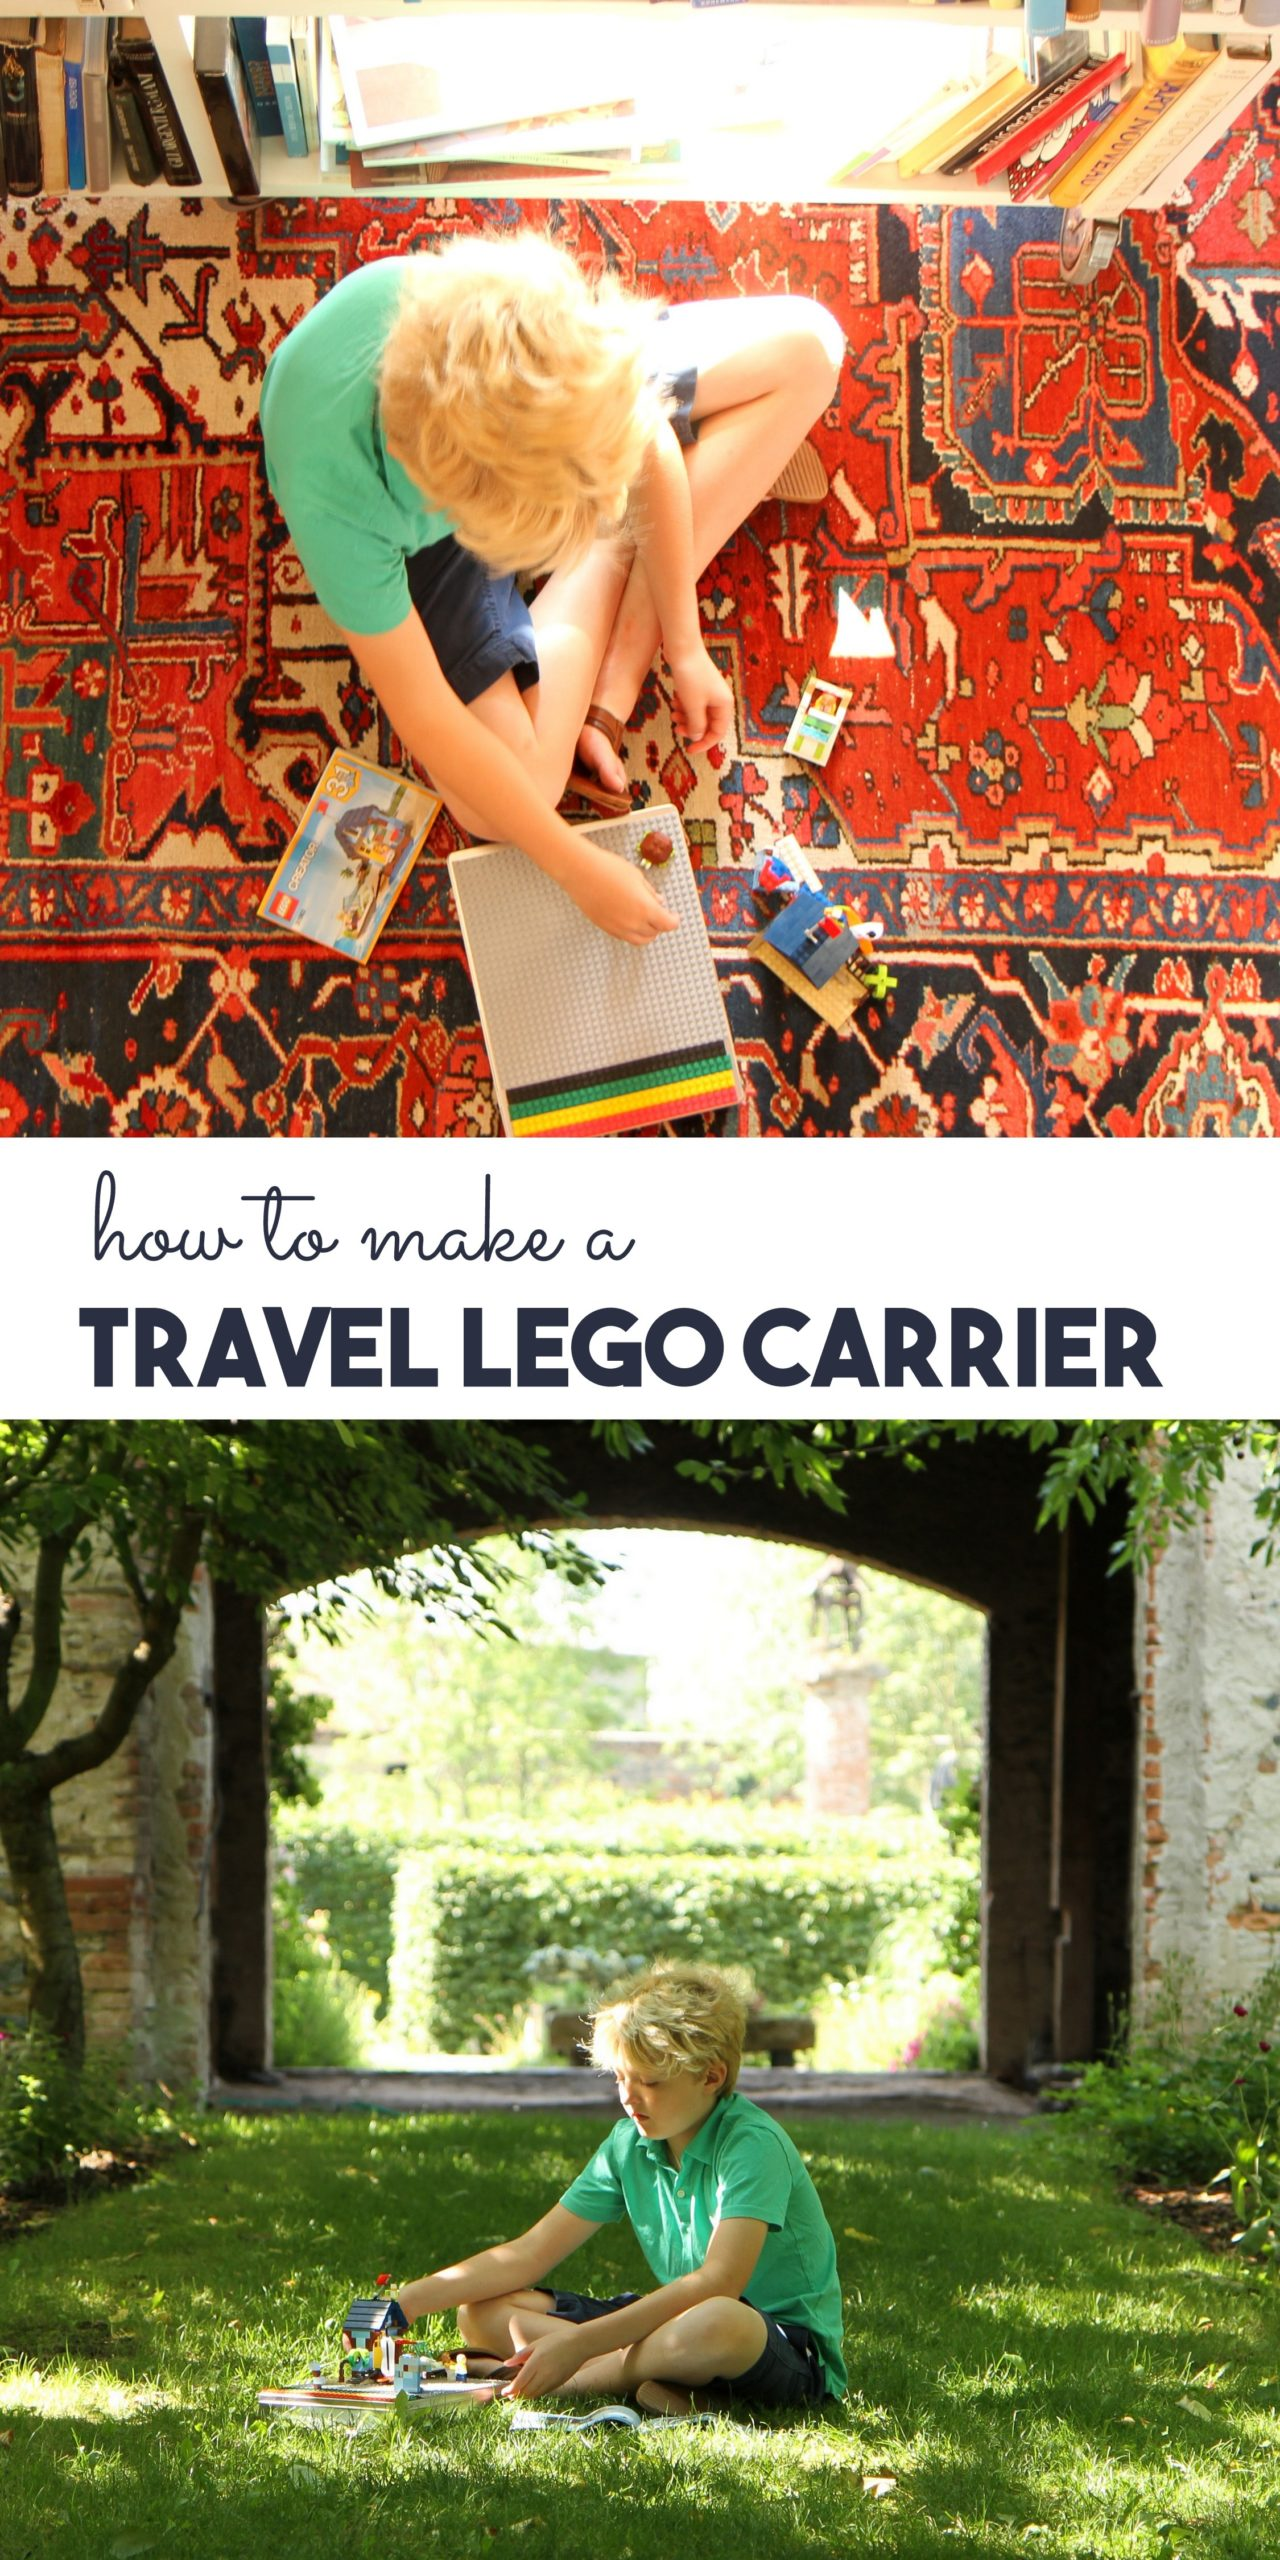 how to make a travel lego carrier